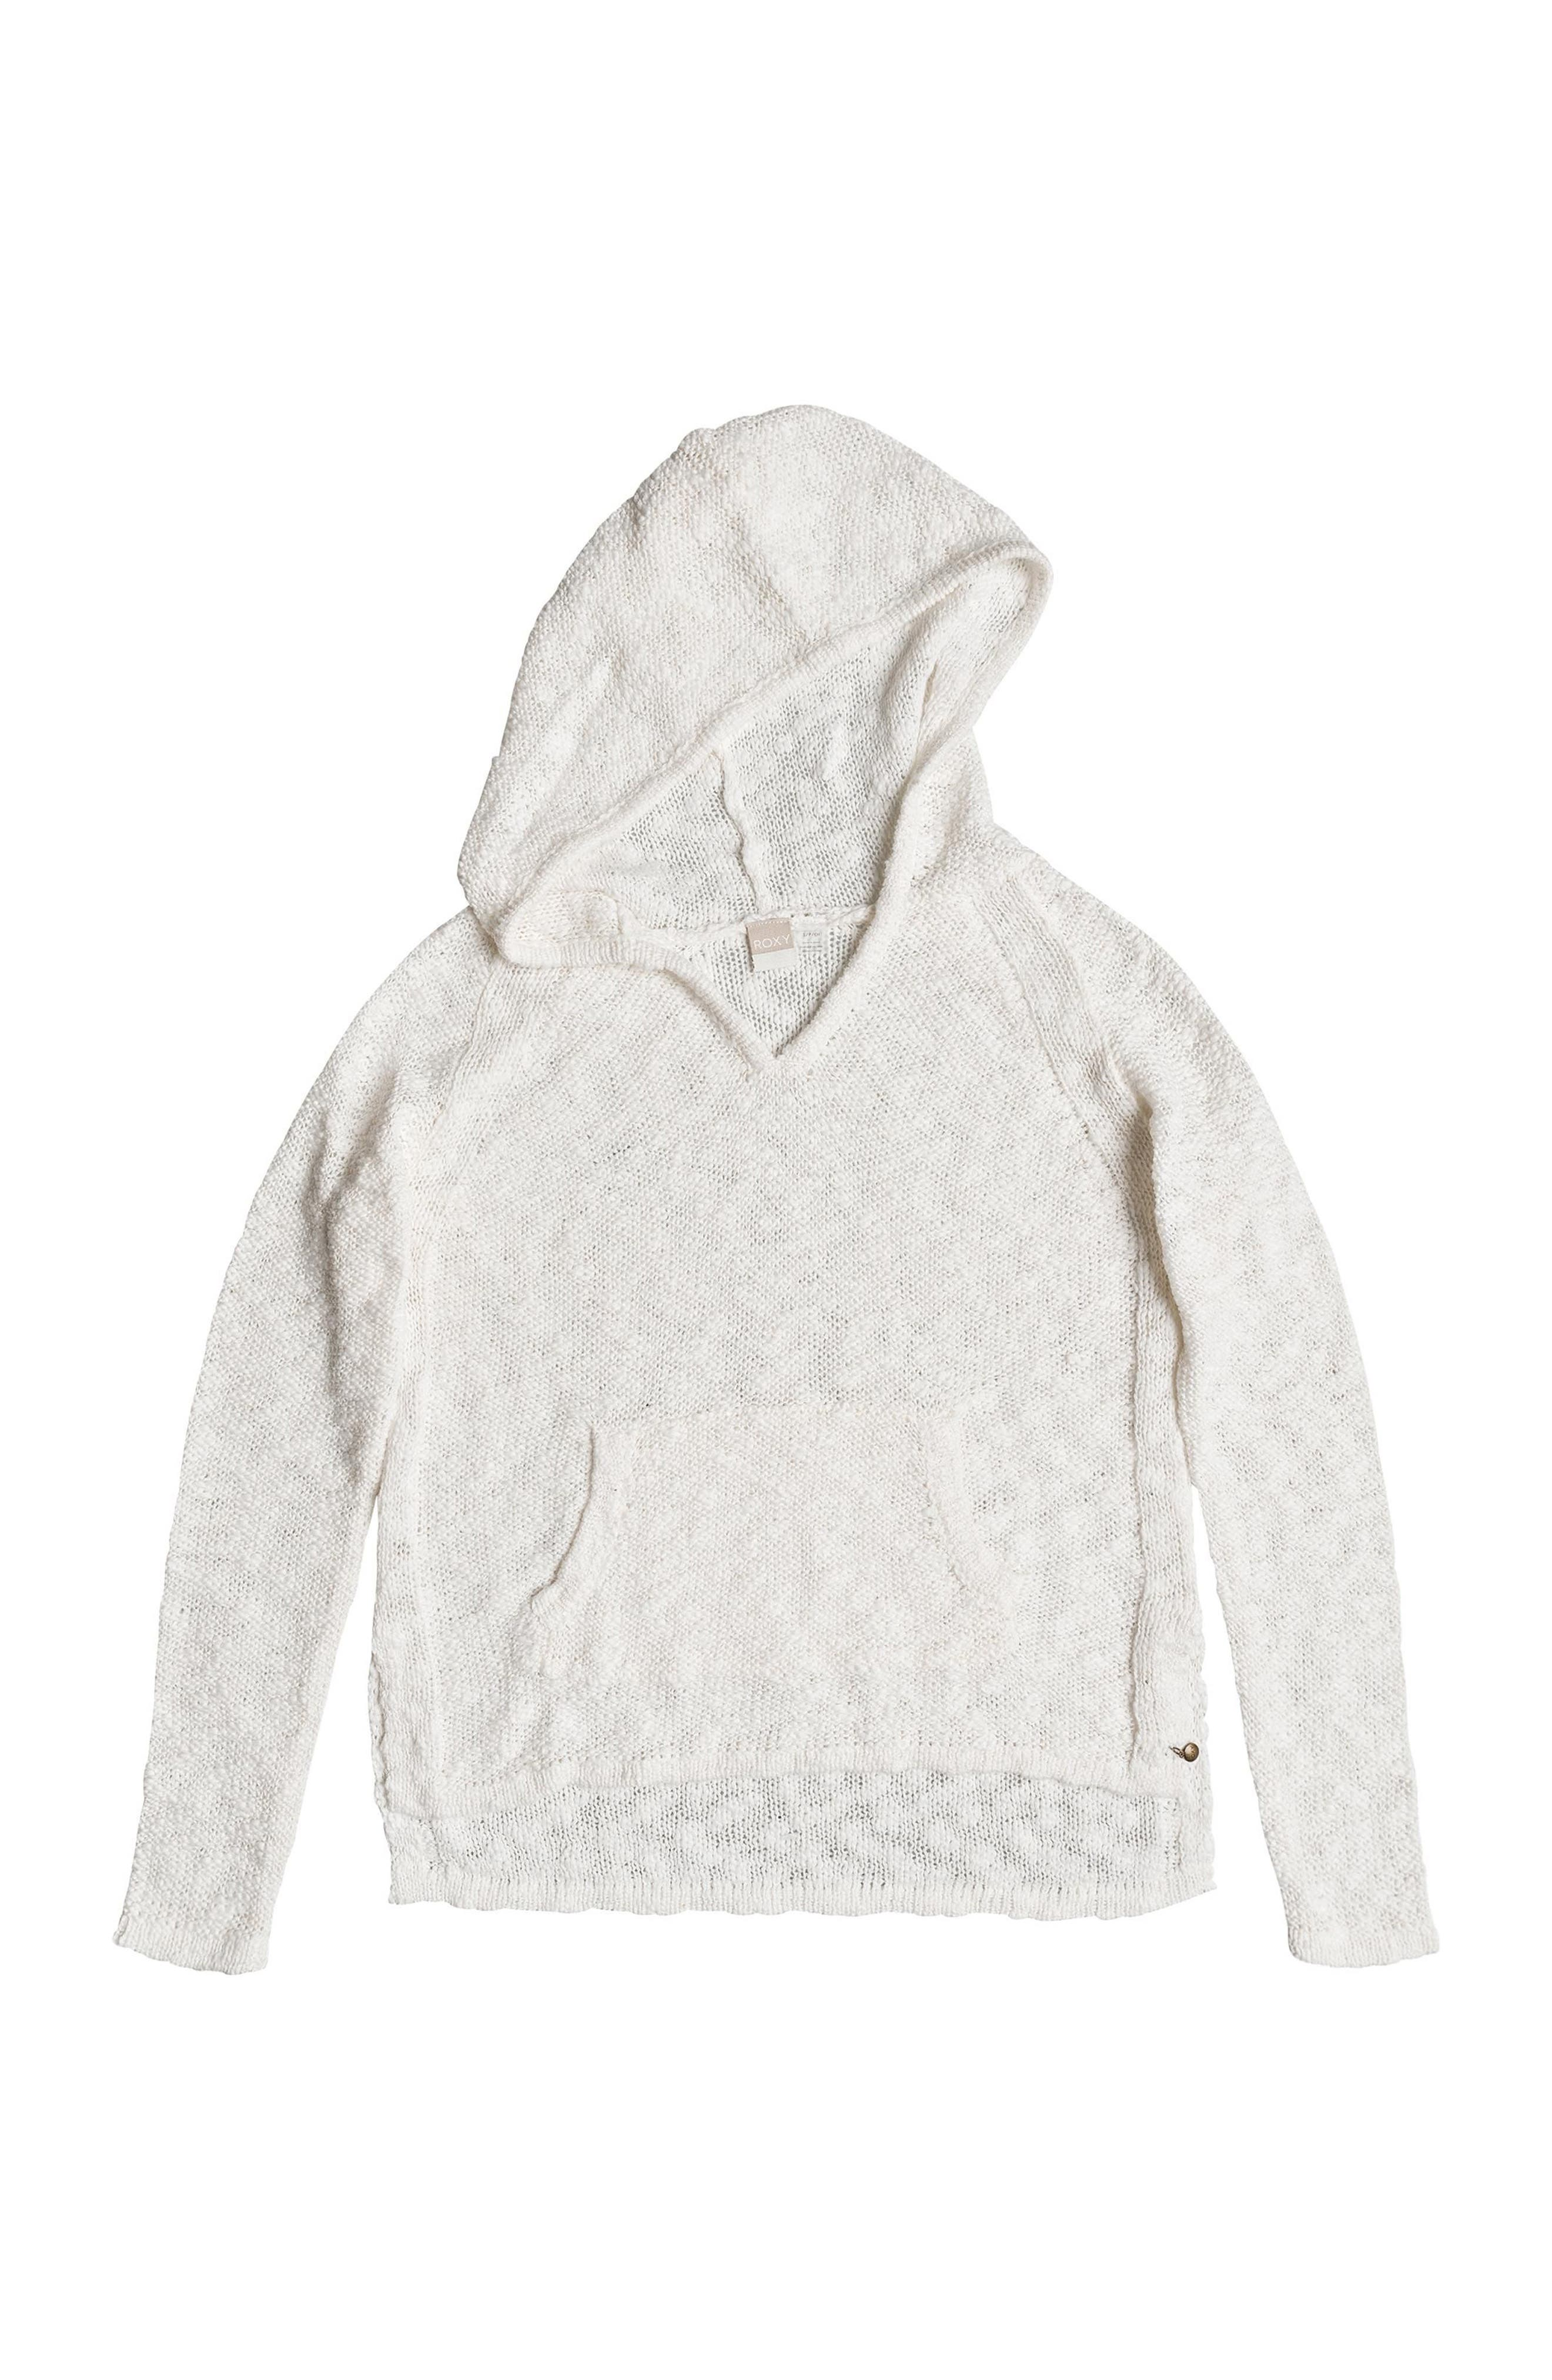 Slouchy Morning Cotton Knit Hoodie,                             Alternate thumbnail 4, color,                             Marshmallow